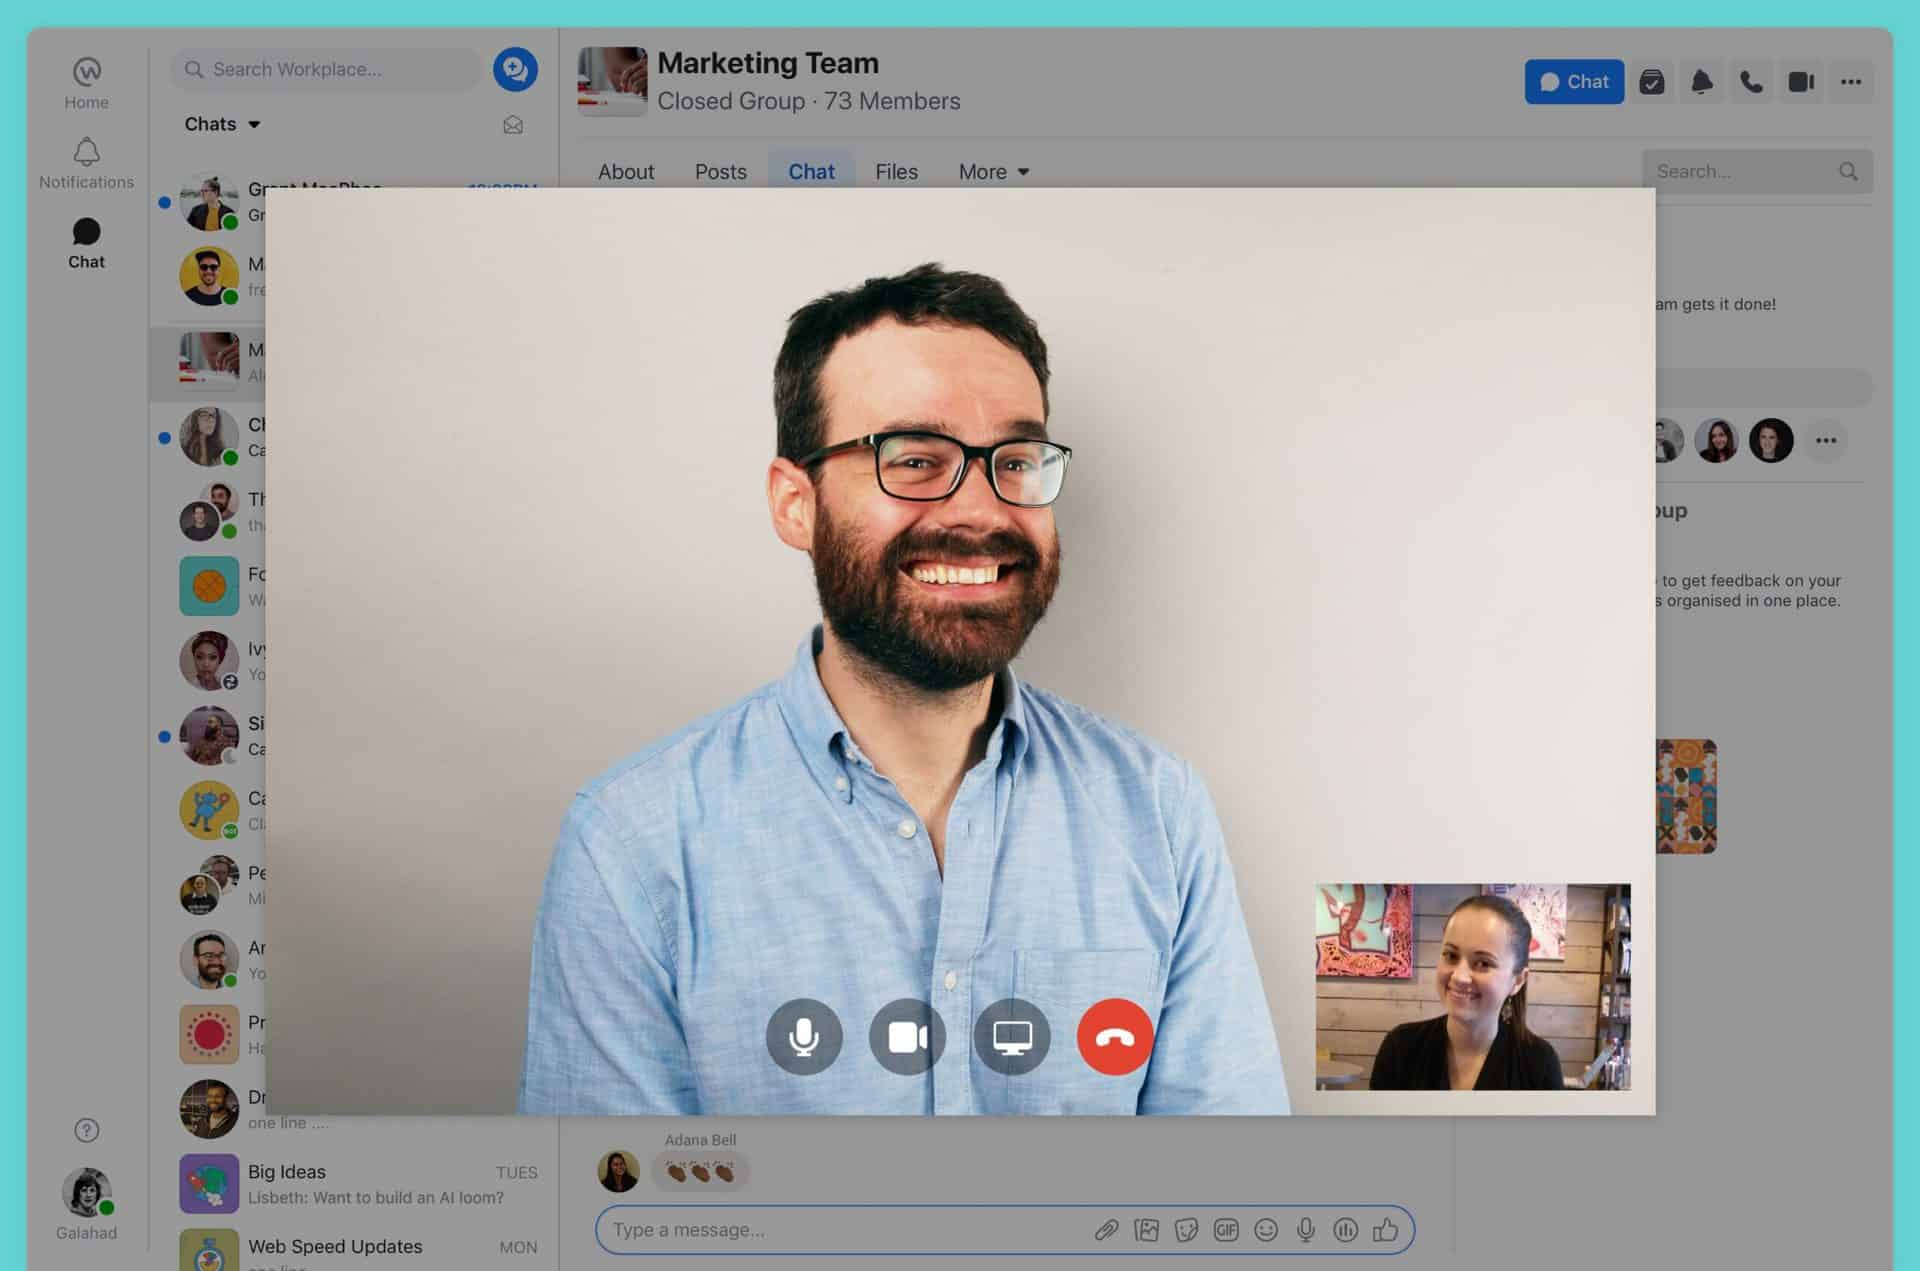 Video chat in Workplace from Facebook